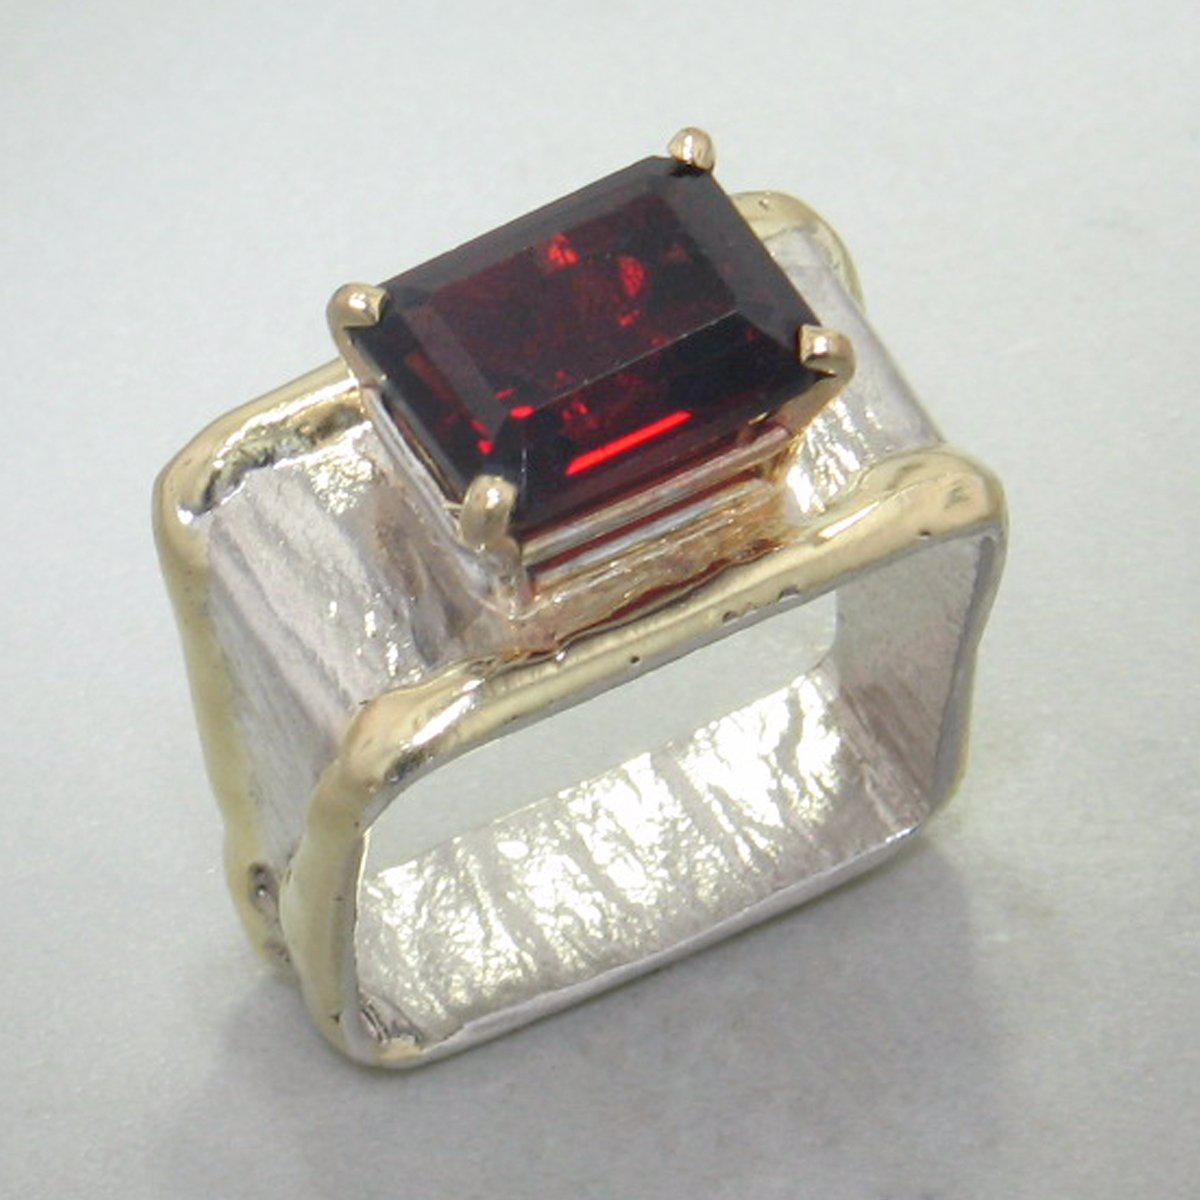 14K Gold & Crystalline Silver Garnet Ring - 20911-Fusion Designs-Renee Taylor Gallery